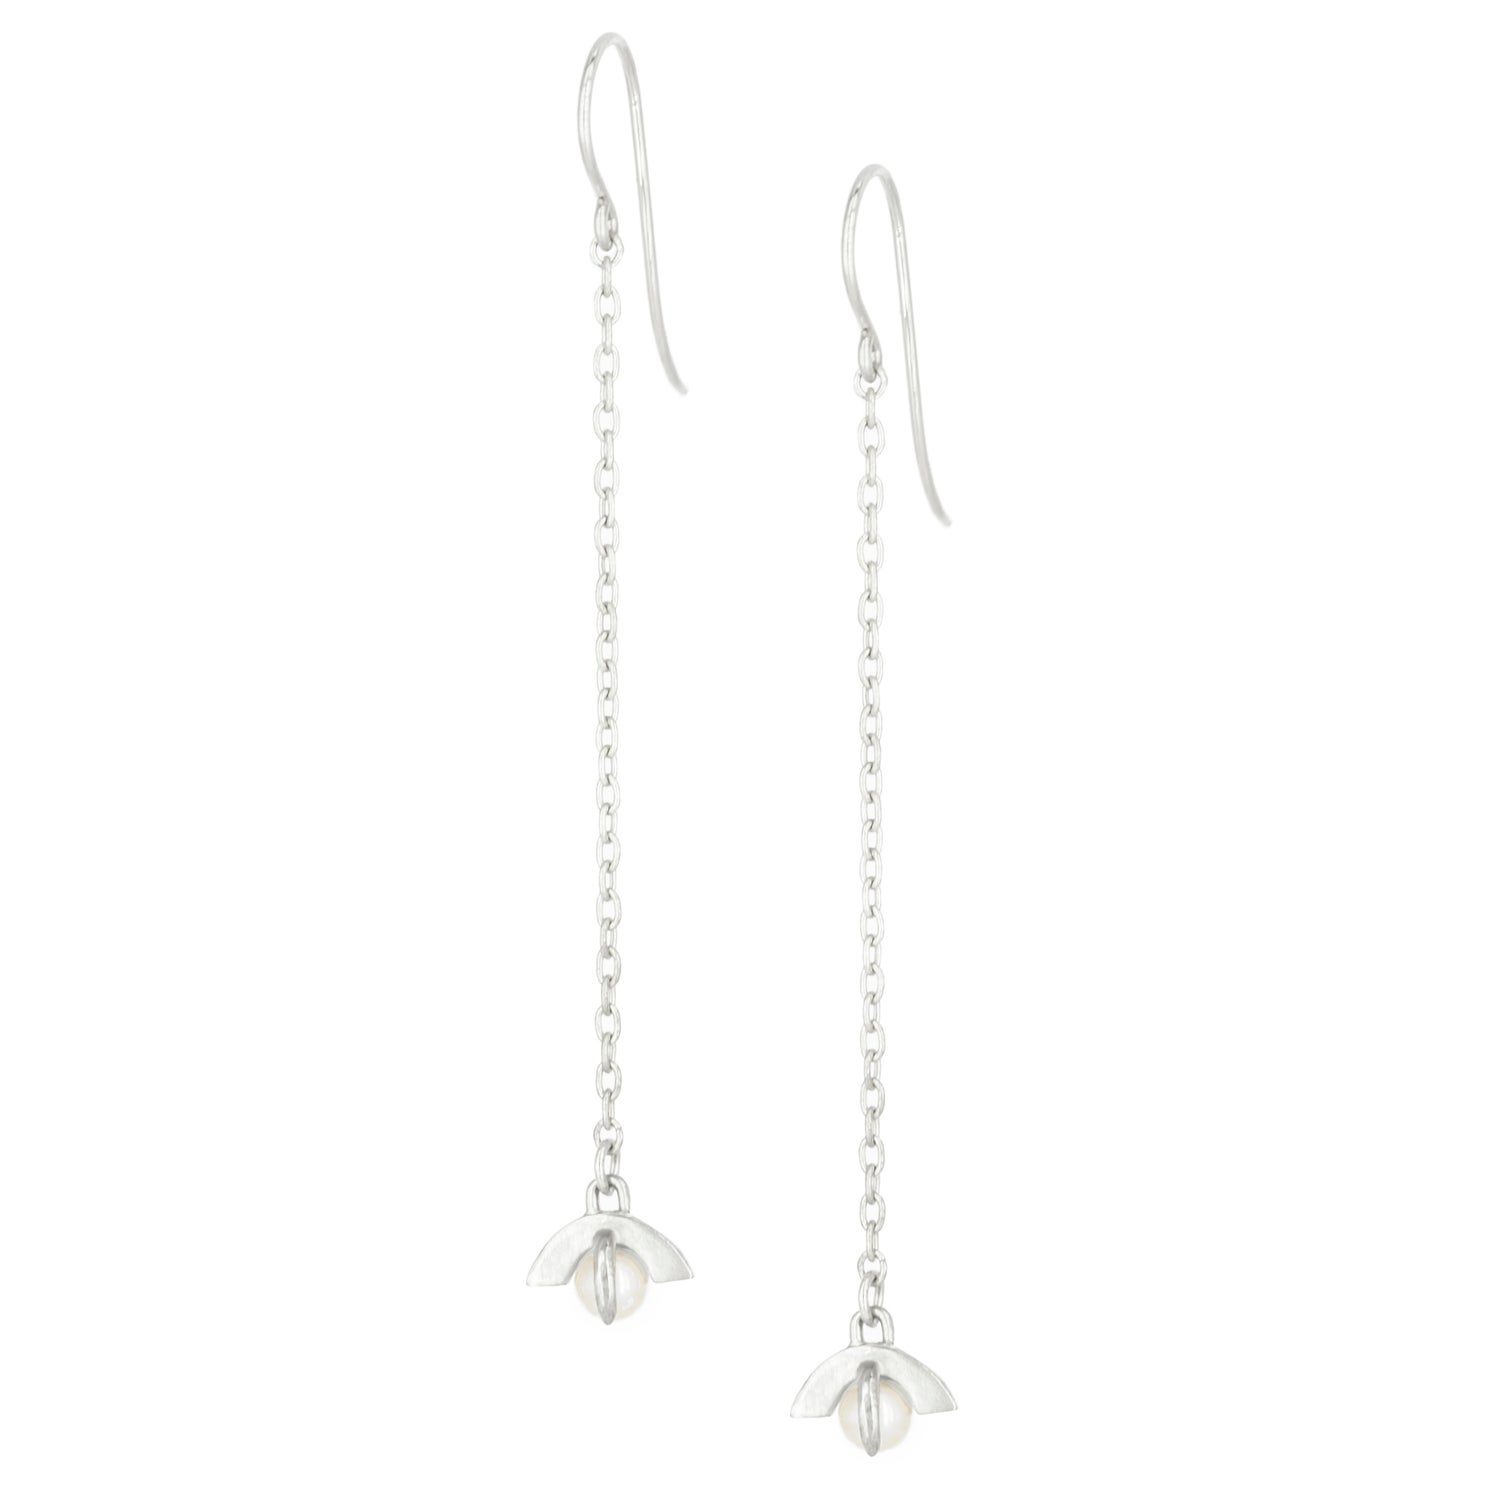 Image Of Moonrise Chain Earrings Silver